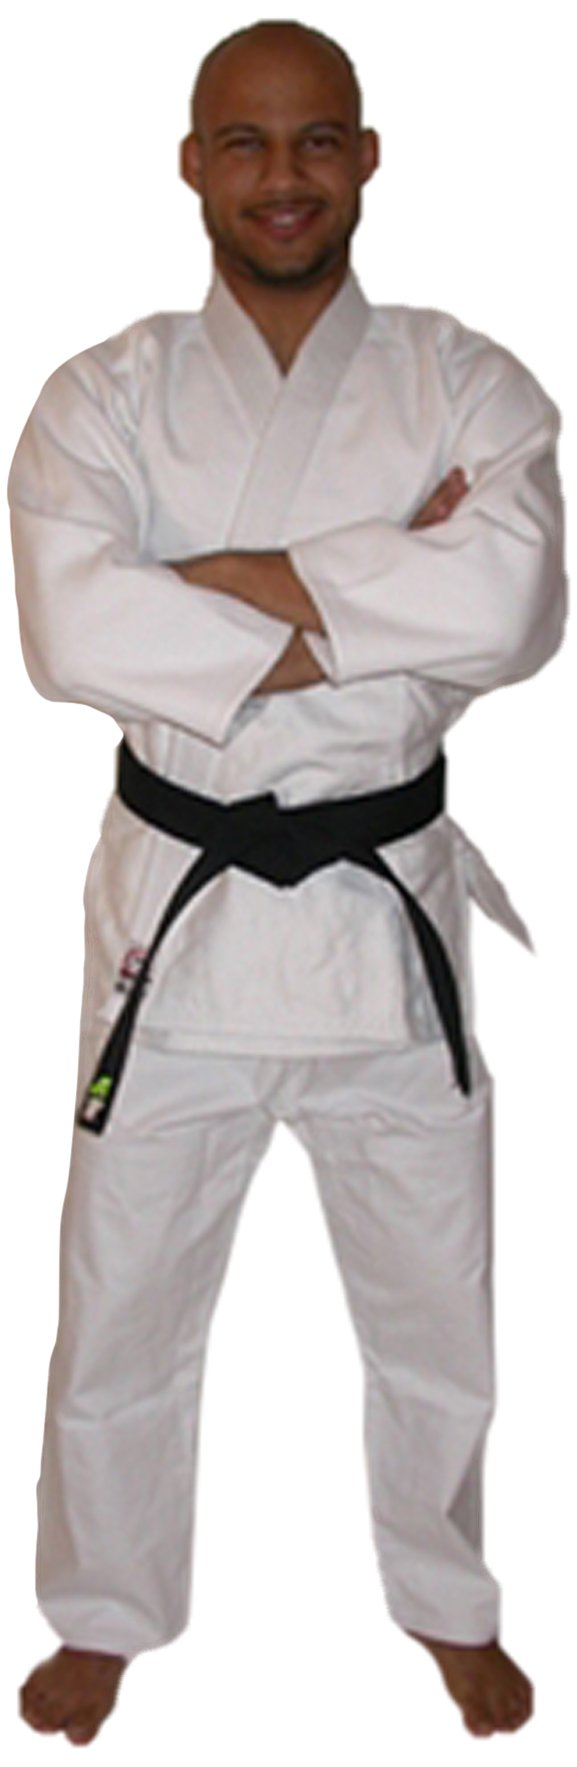 Fuji Advanced Brushed karate Uniform, White, 4 by Fuji